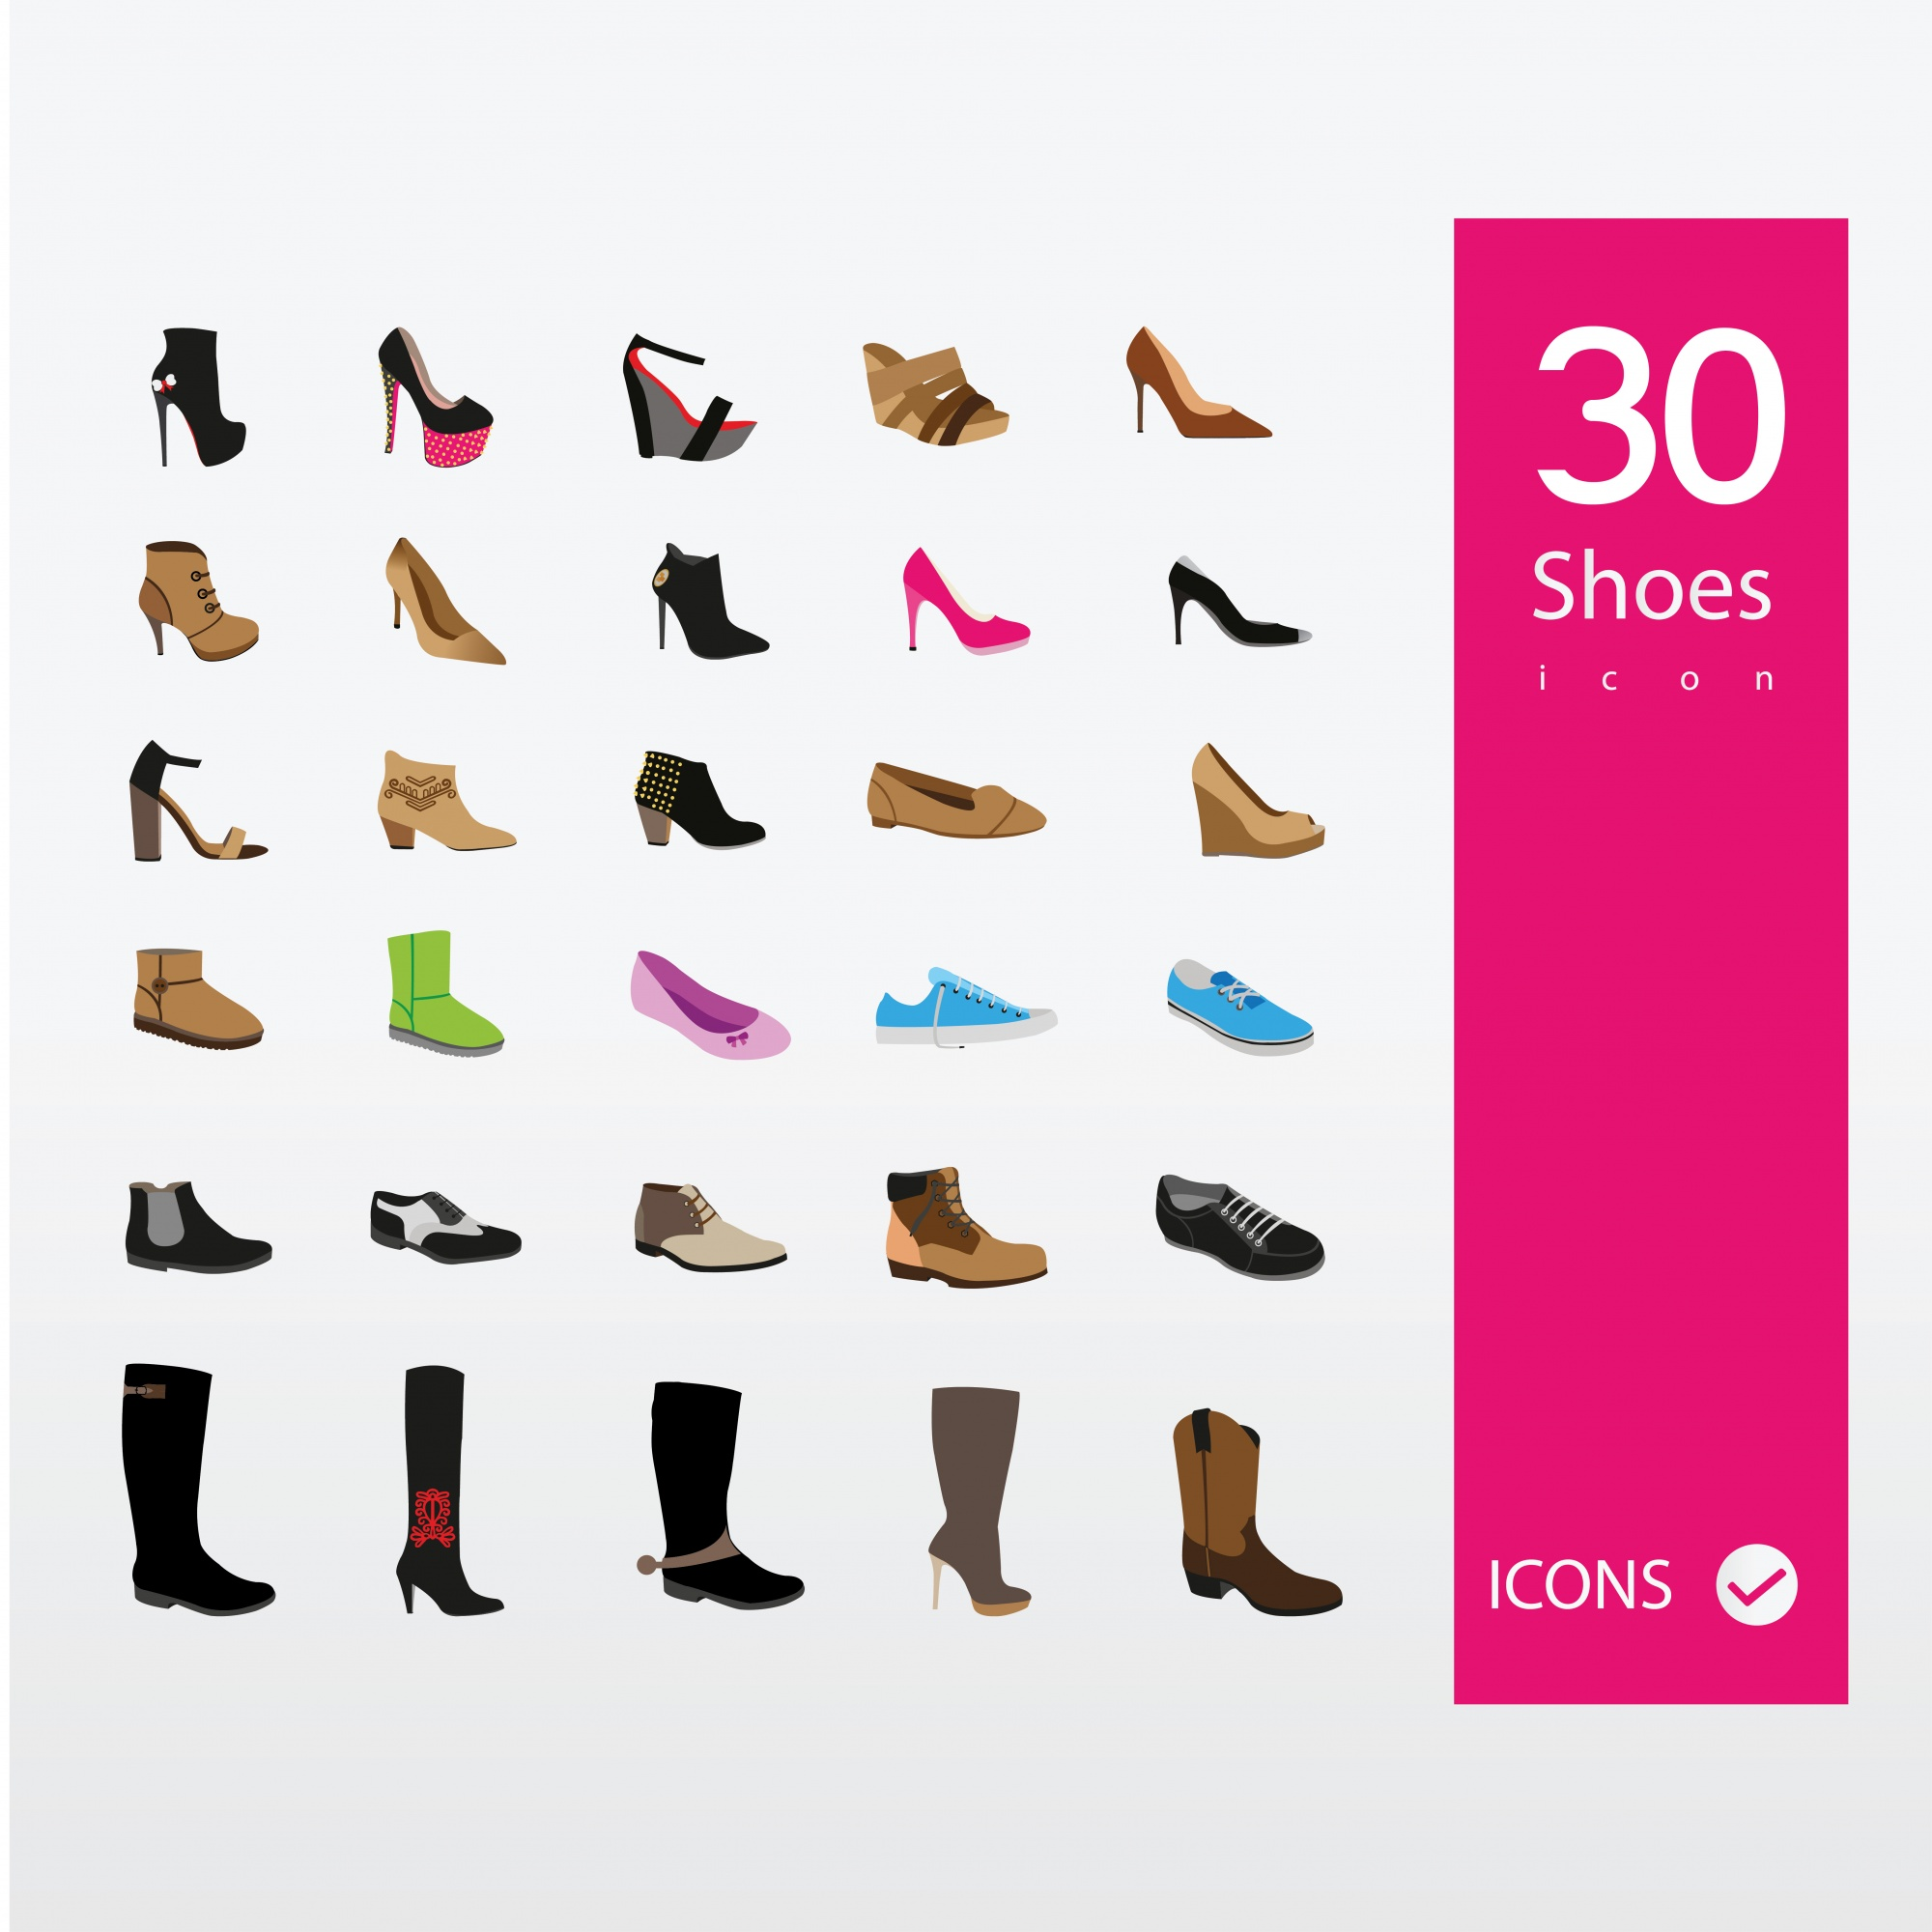 Shoe icons collection